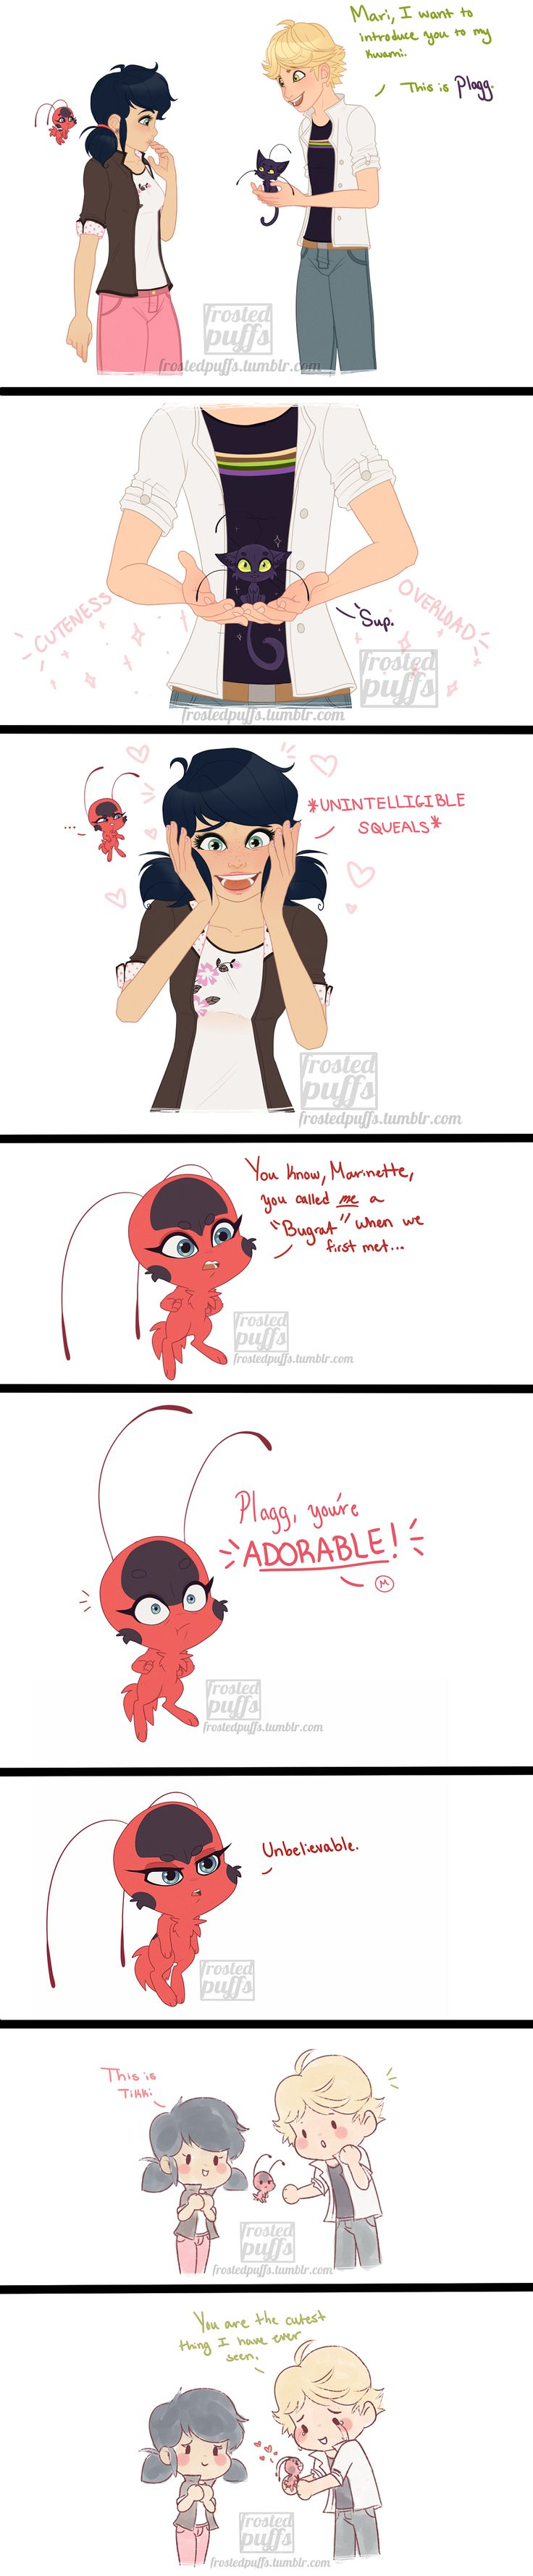 Tikki is so jealous! And Adrien feels bless to know a kwami that is nice to him.